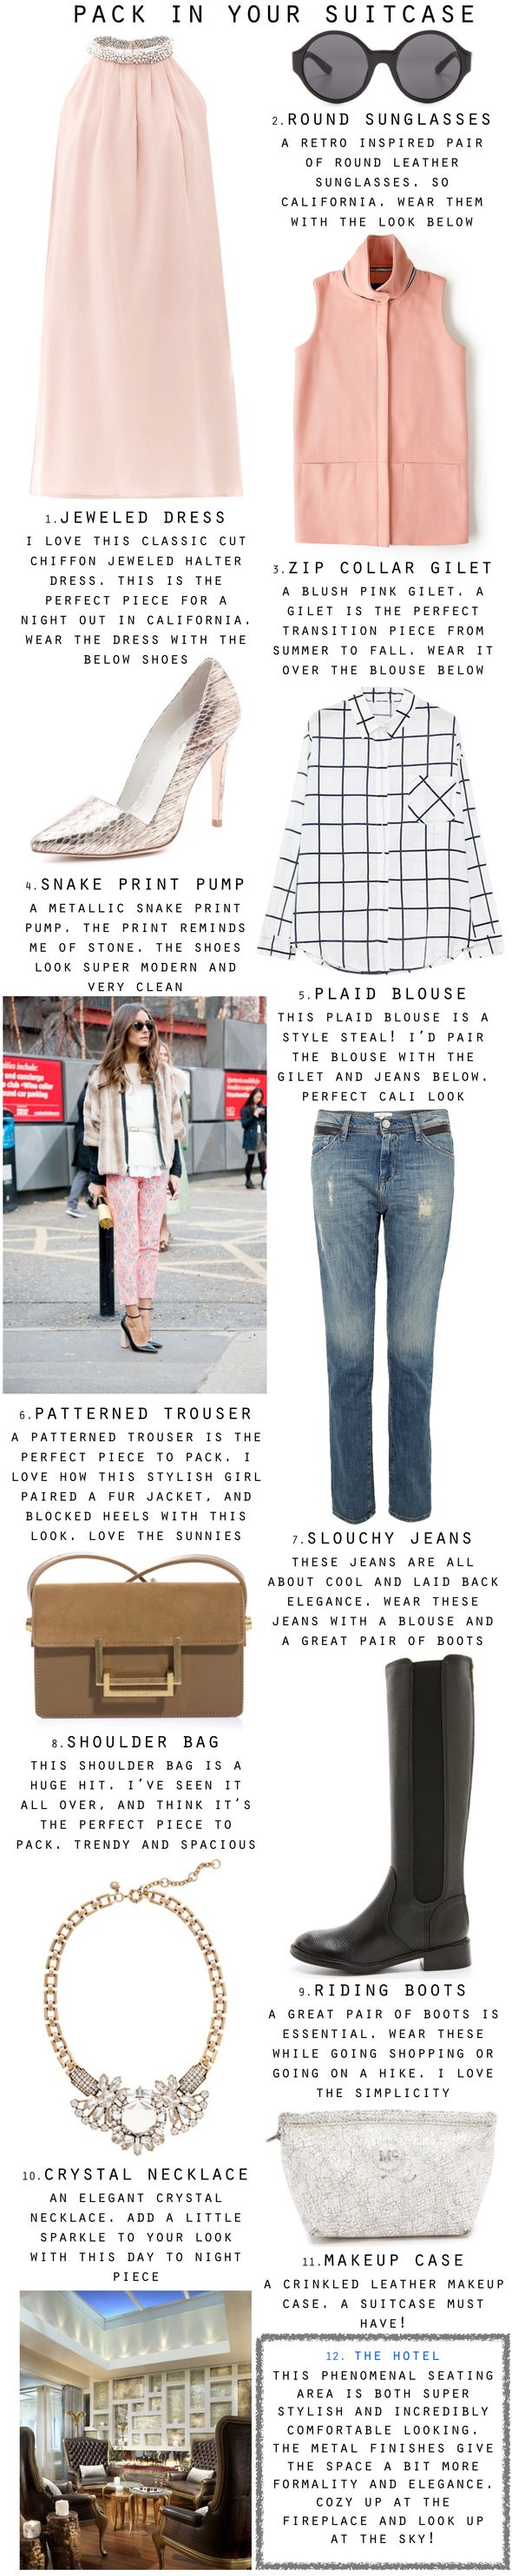 Fashion pairings perfect for The Huntley Santa Monica!